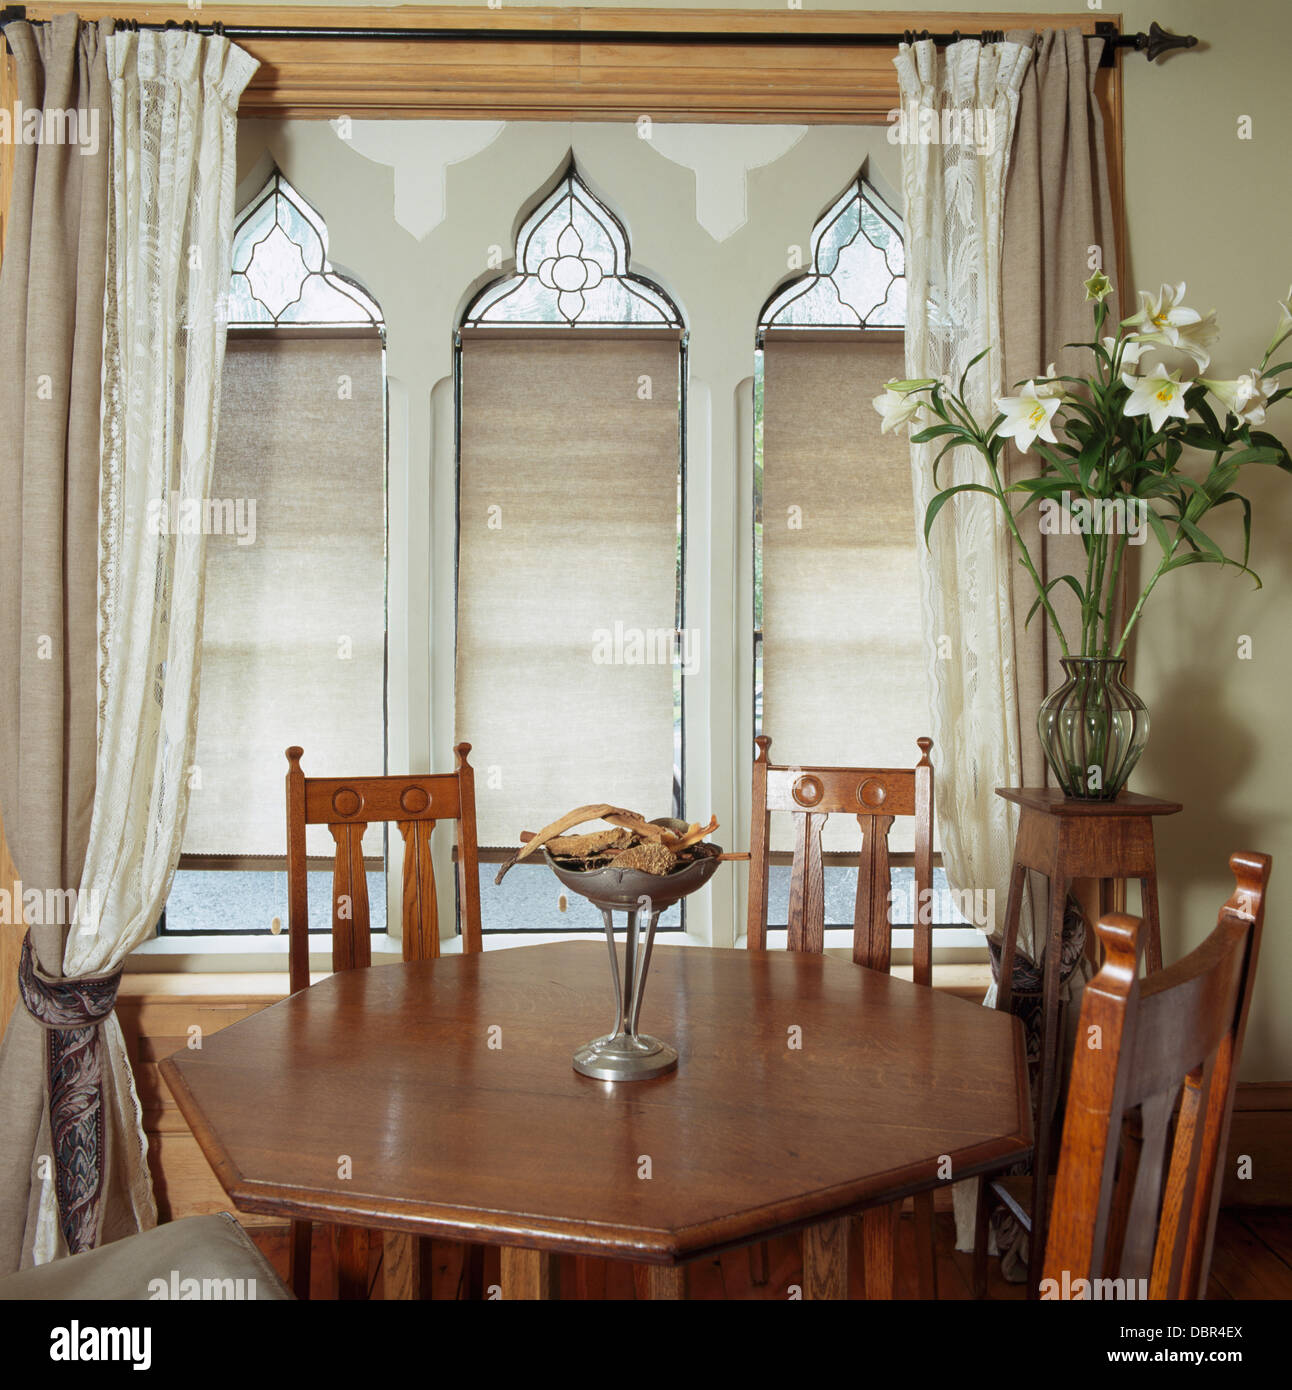 Arts Crafts Style Chairs And Table In Small Dining Room With Beige White Drapes On Gothic Window